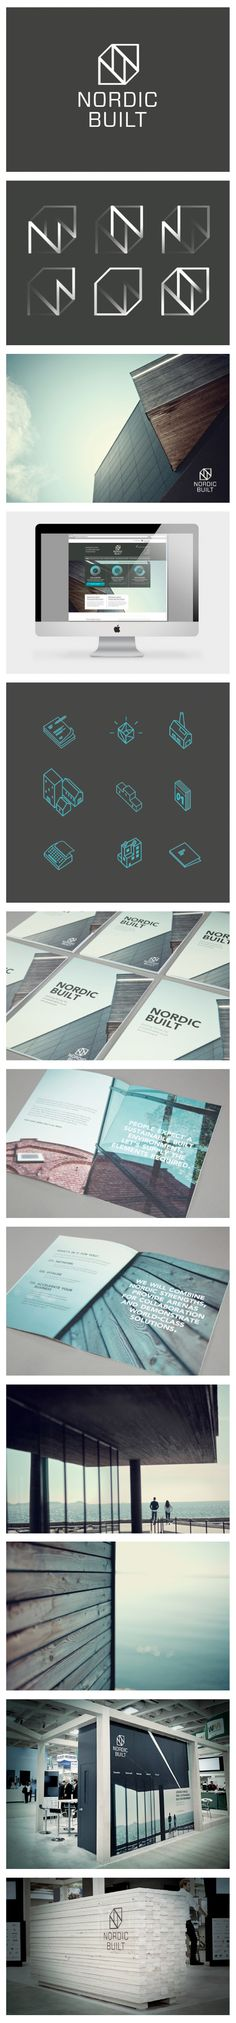 NORDIC BUILT - Branding, Exhibition Design